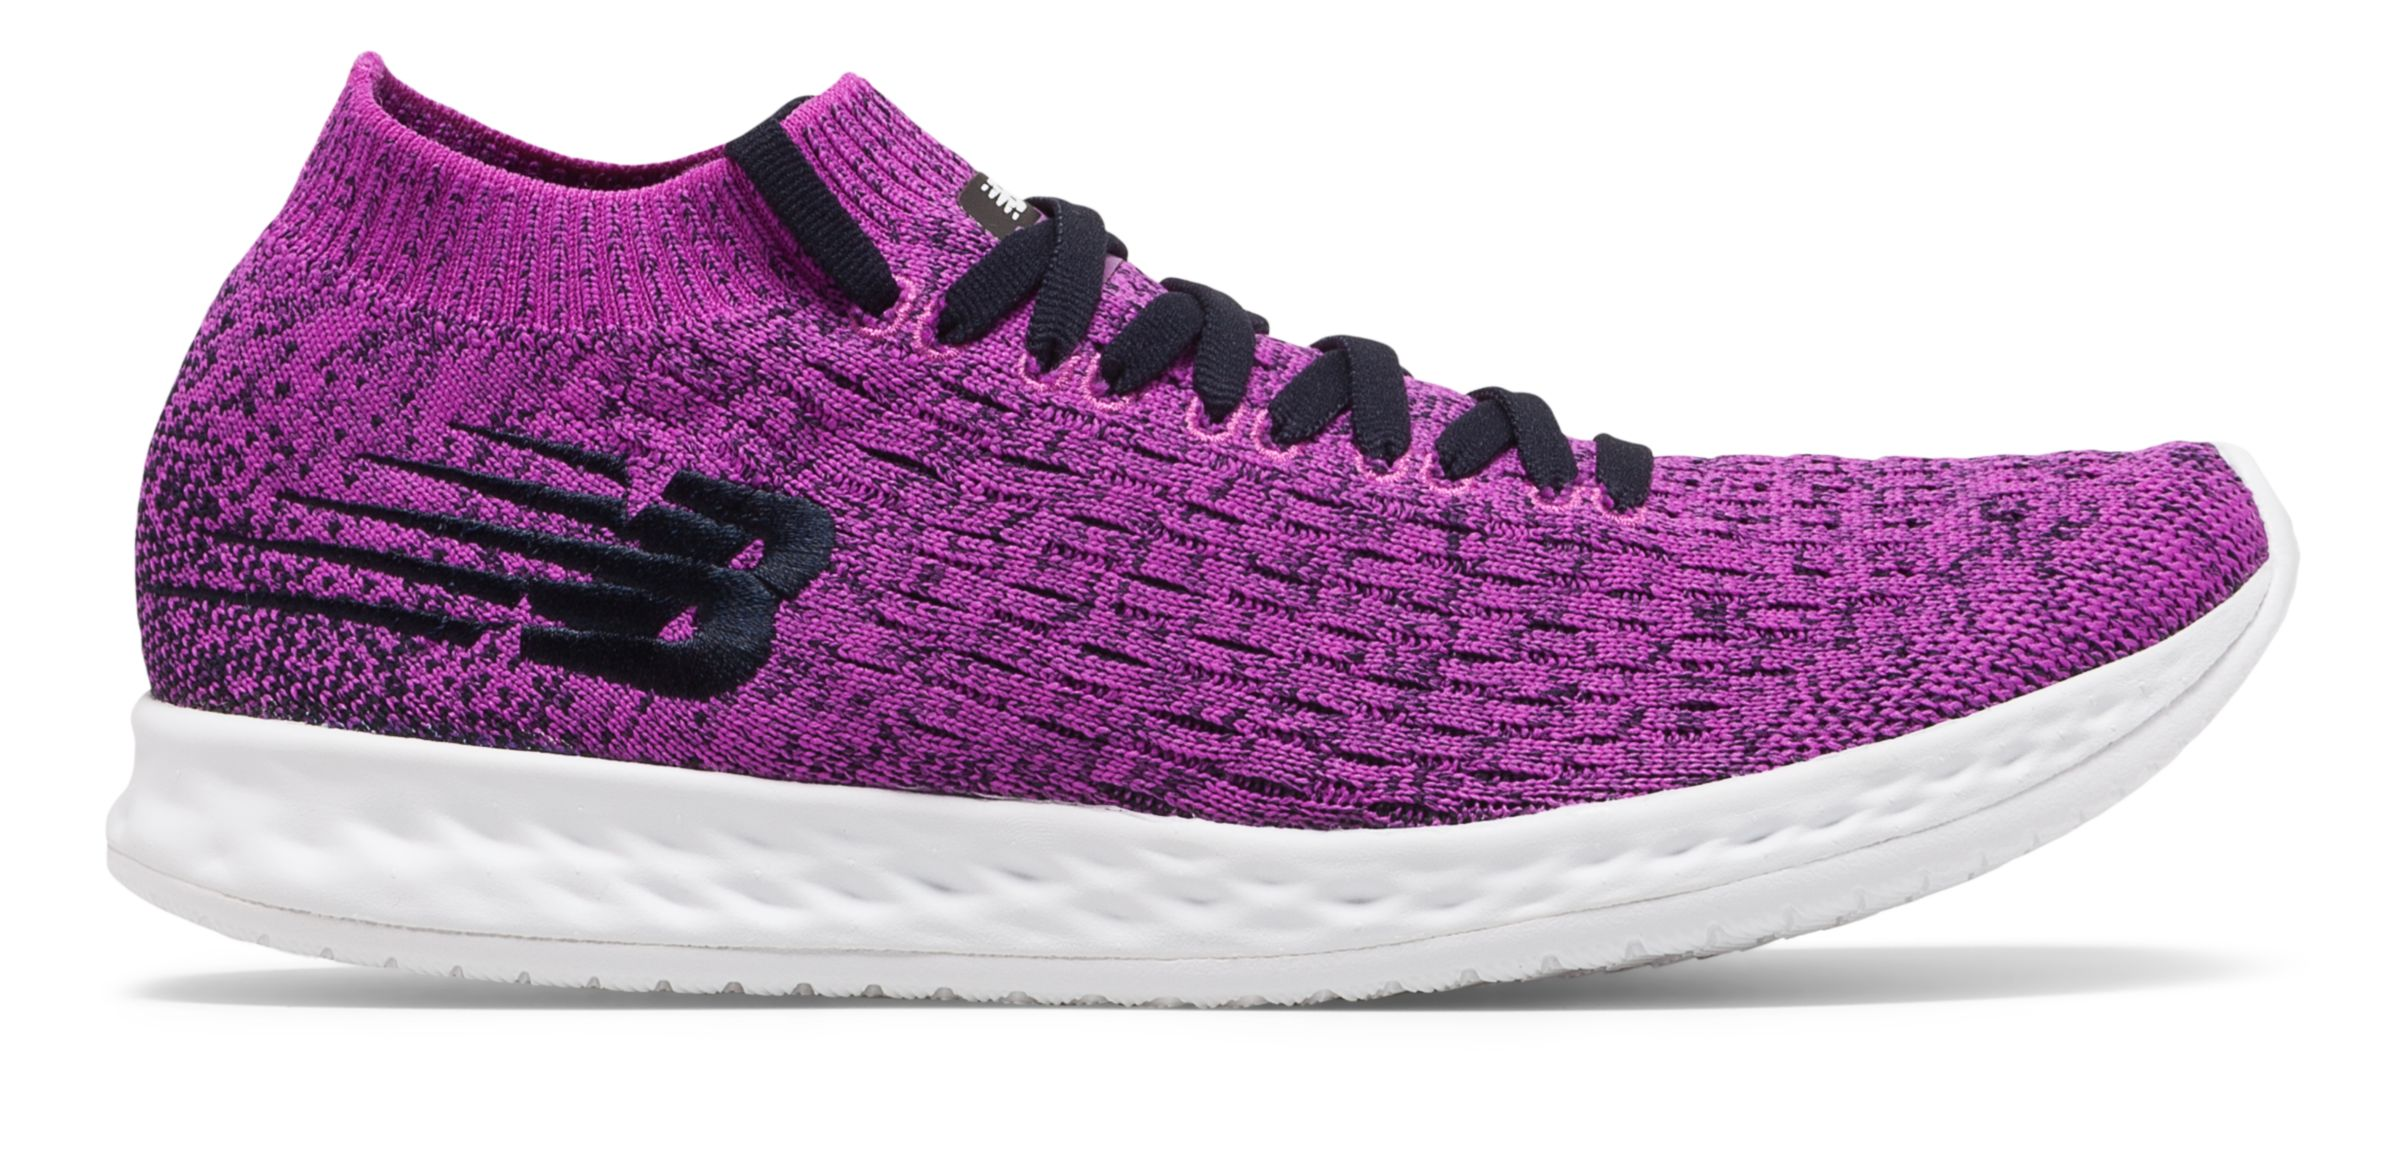 Women's Fresh Foam Zante Solas